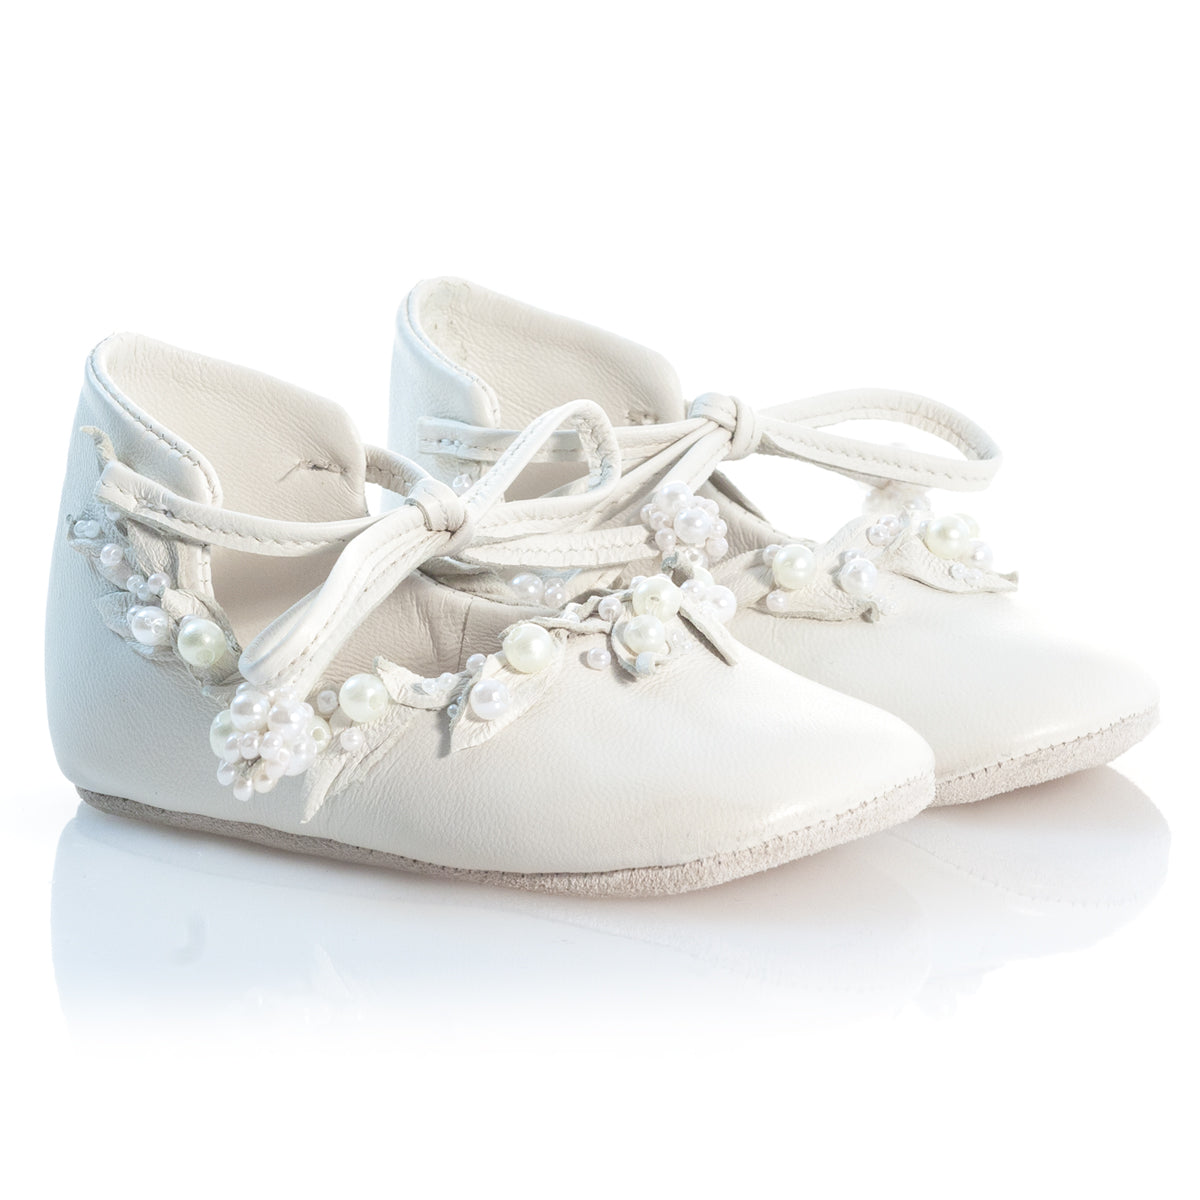 VIBYS WHITE FOREST handmade white leather girl shoes for wedding party christening special event